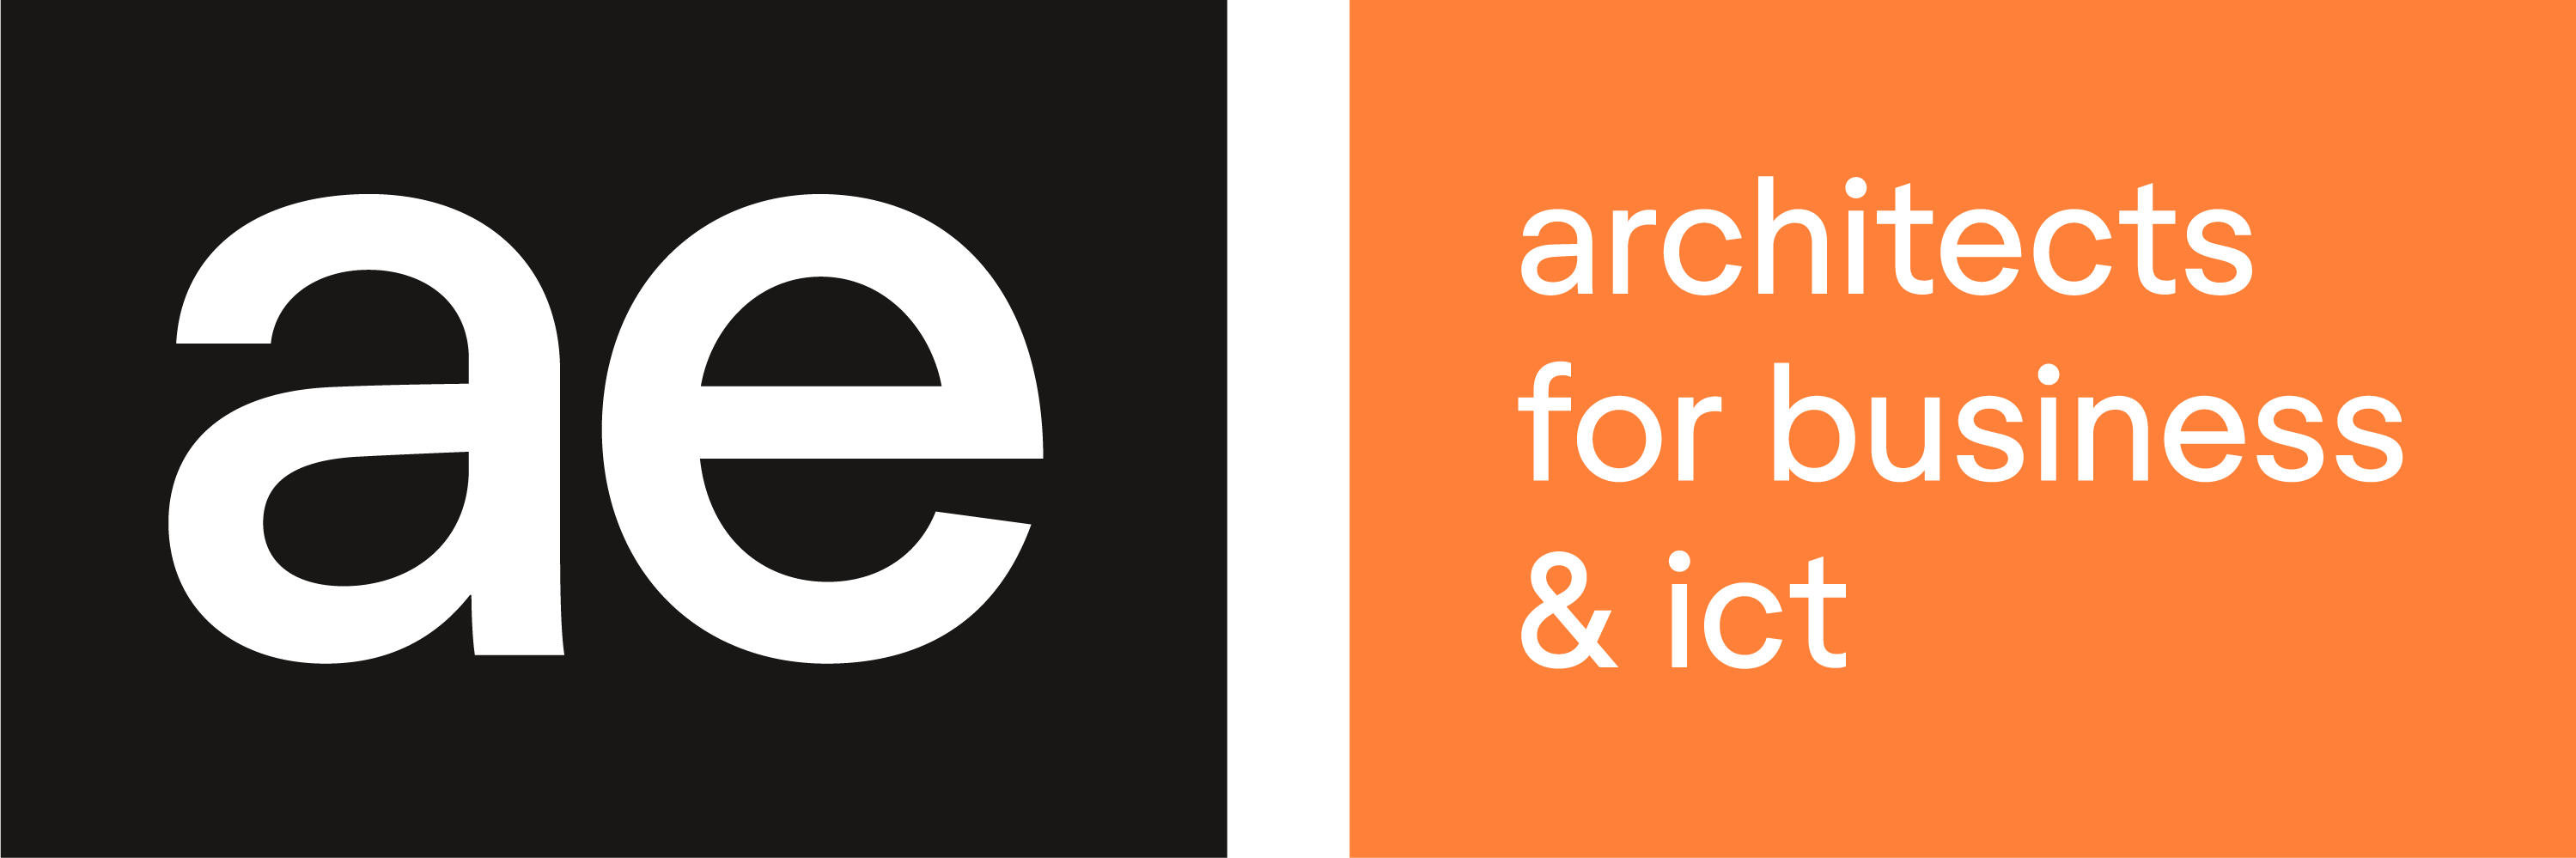 AE architects for business & ICT logo